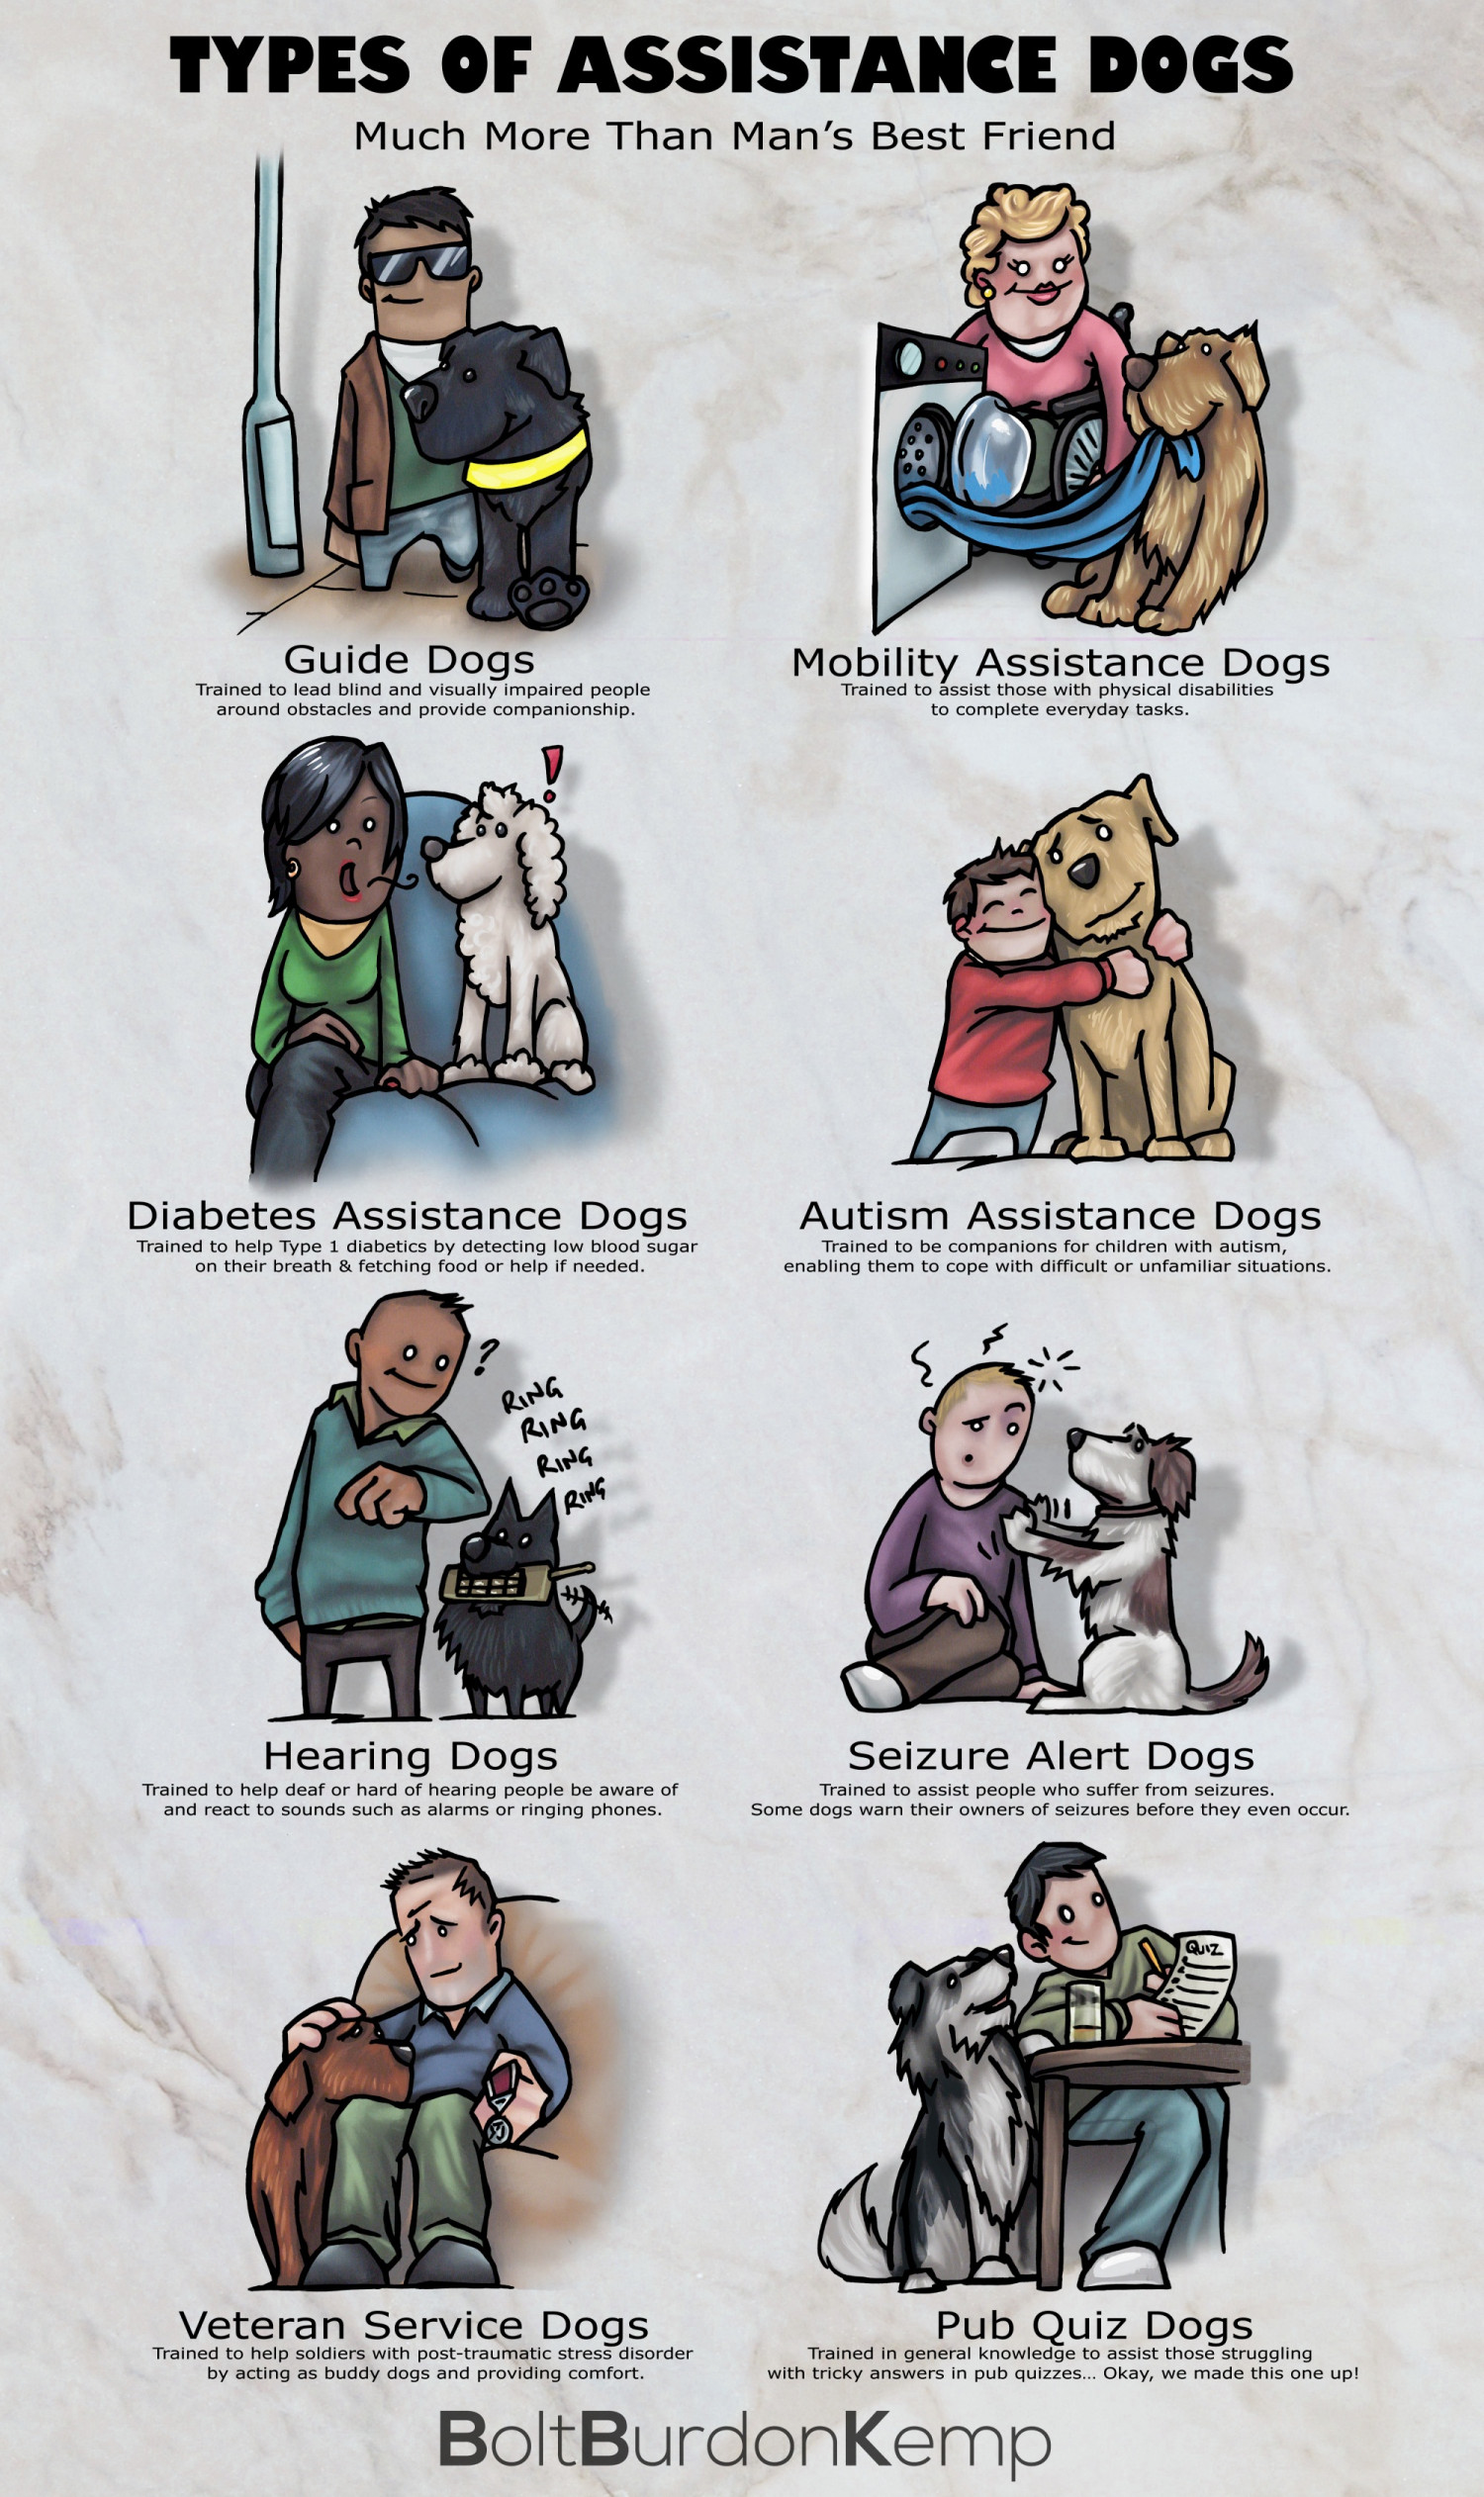 Types of Assistance Dogs Infographic